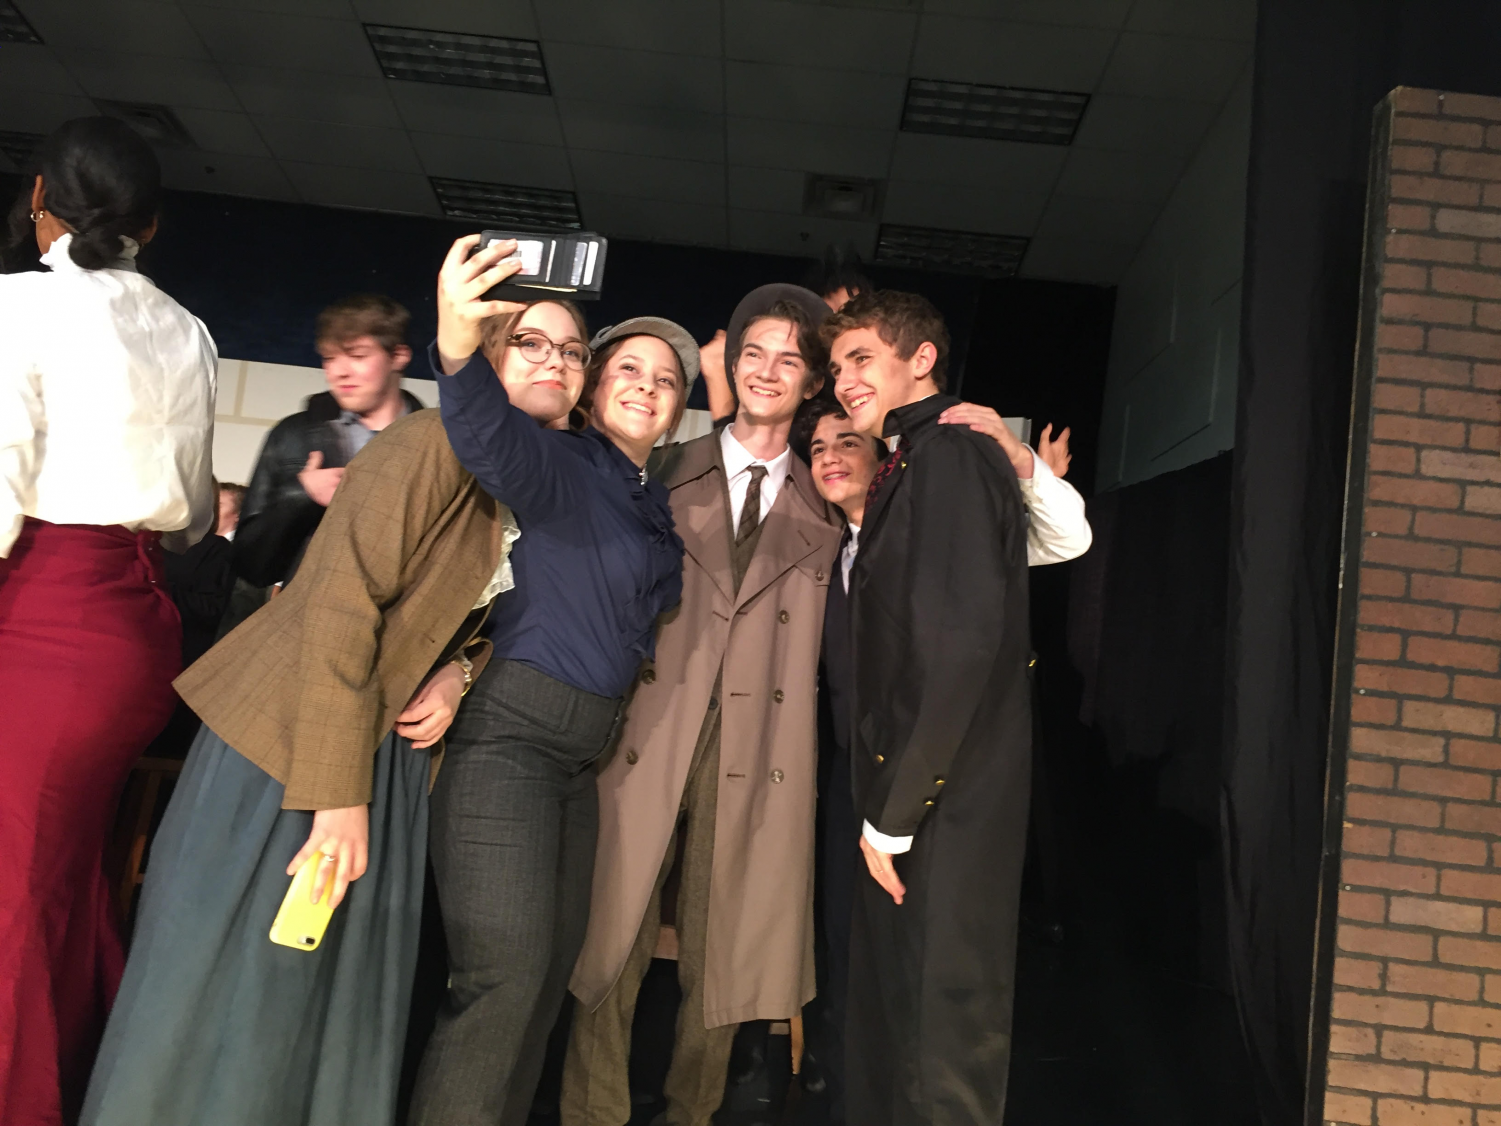 Sherlock Holmes (junior Jocey Price) takes a selfie with her castmates.